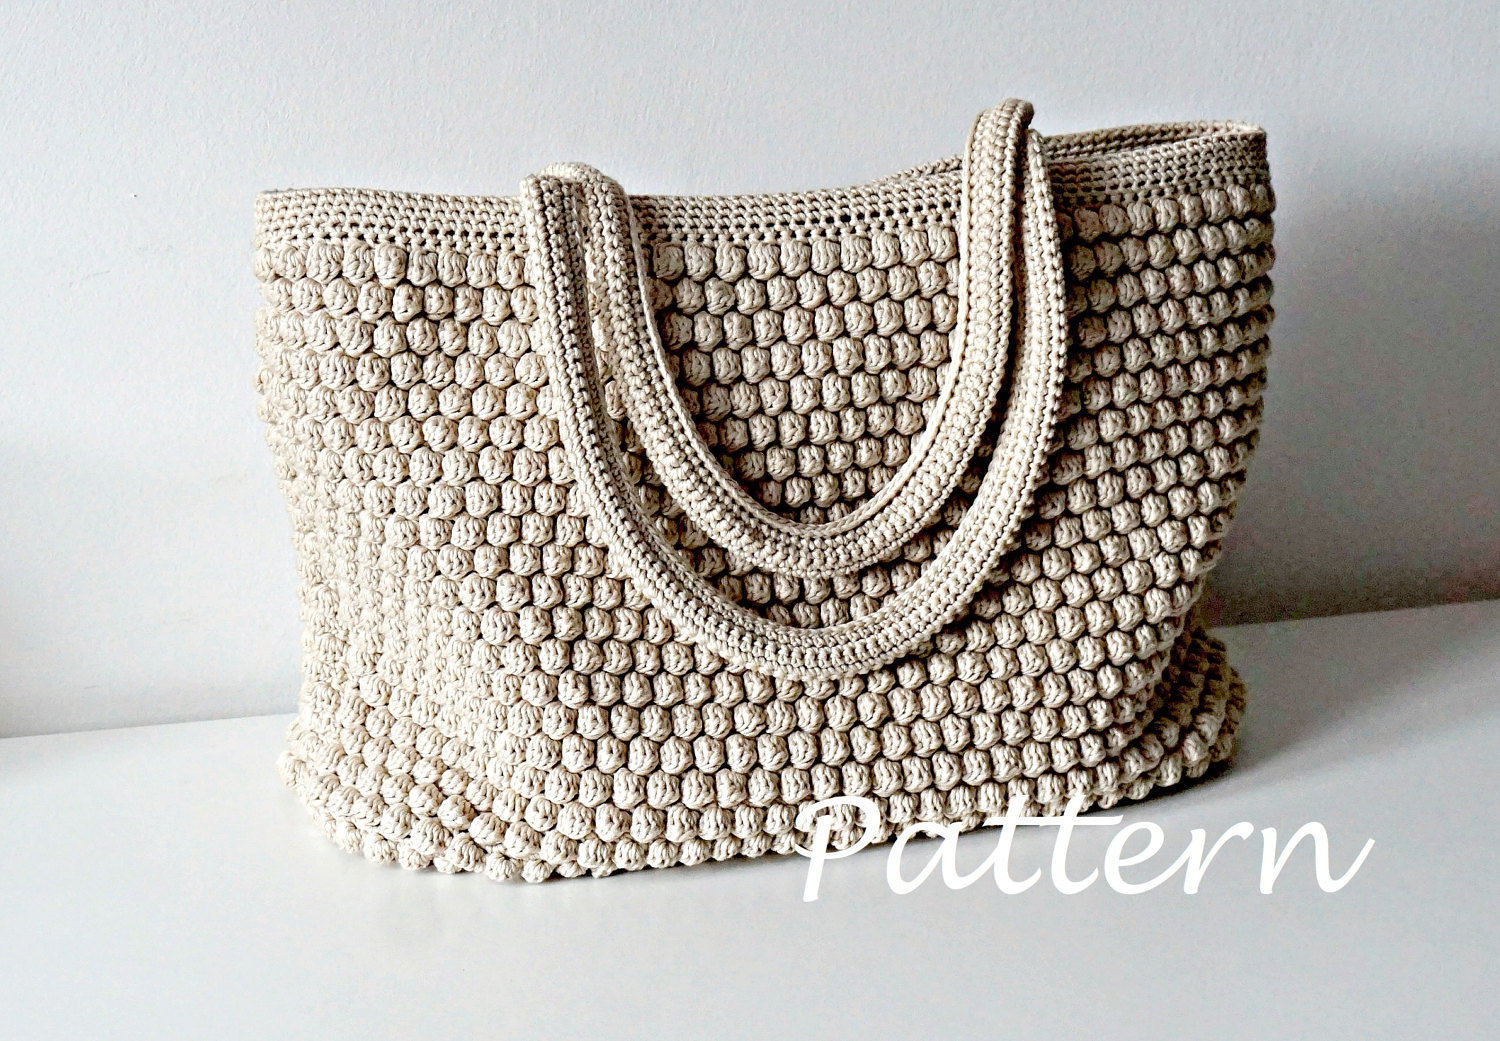 Crochet Purse Pattern Unique Crochet Pattern Crochet Bag Pattern tote Pattern Crochet Of Adorable 44 Photos Crochet Purse Pattern